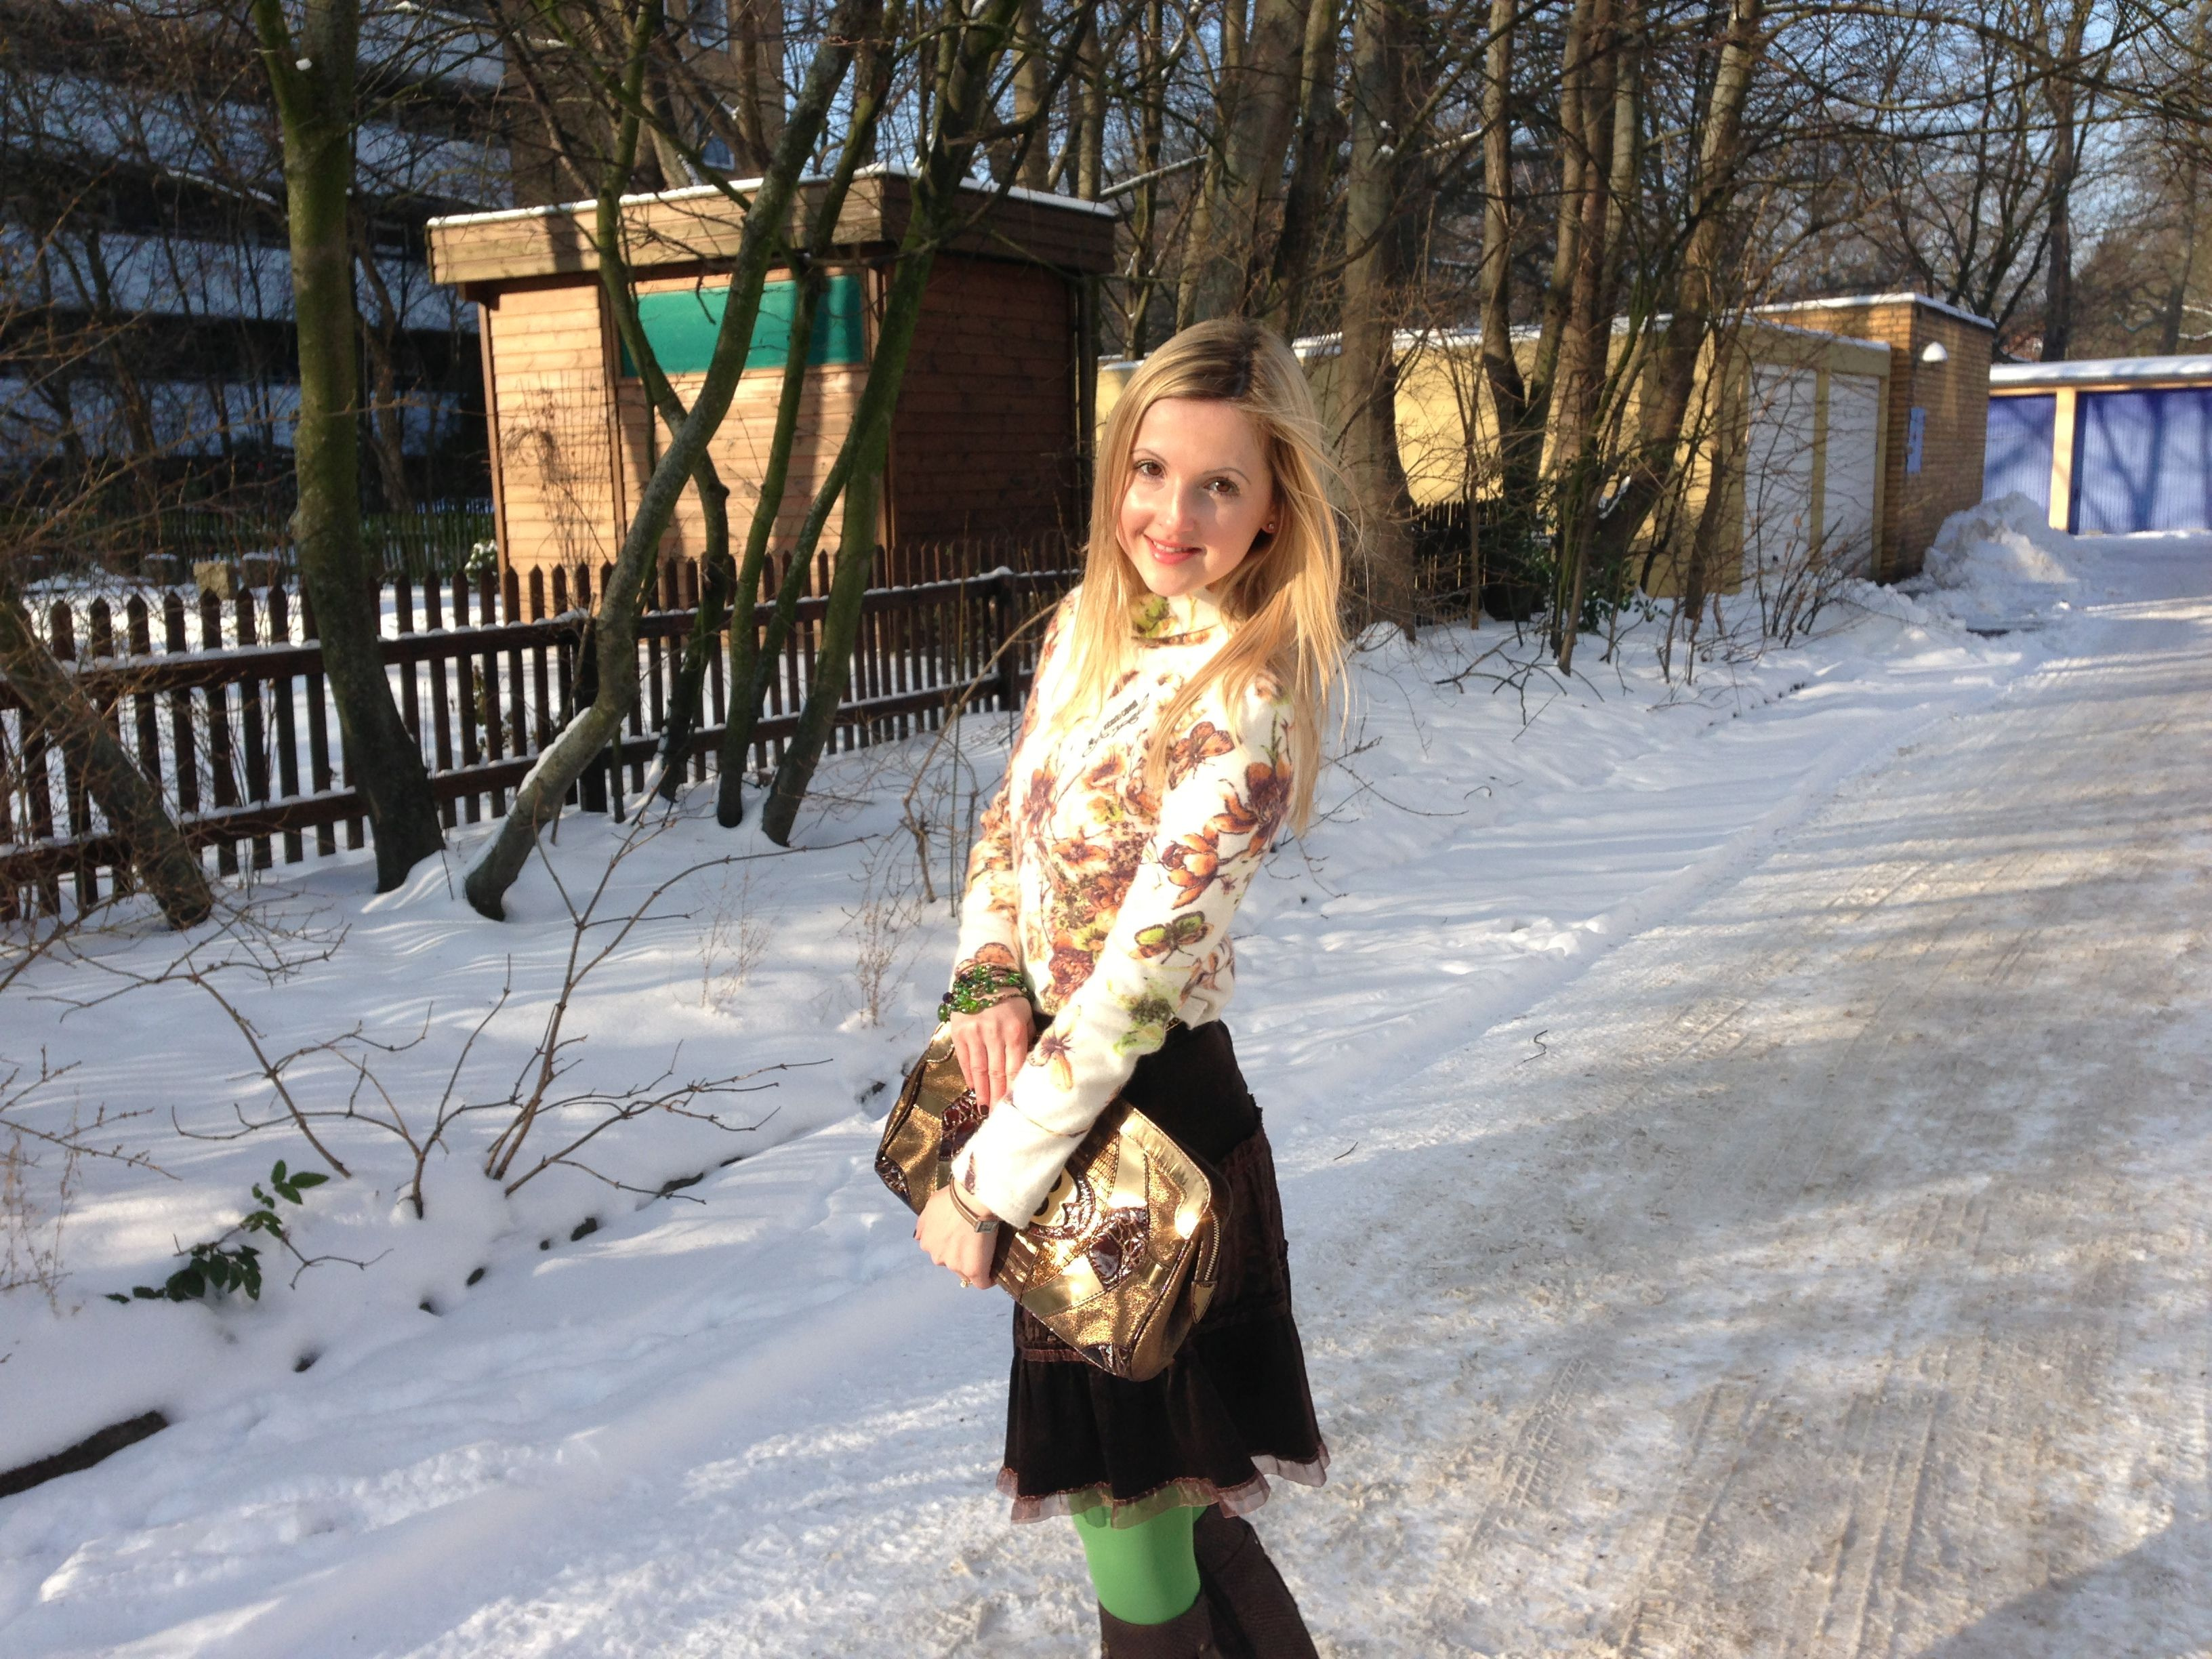 BRACCIALINI BAG MADE A SUNNY DAY  http://www.hannoverfashion.com/outfit/braccialini-bag-made-a-sunny-day/